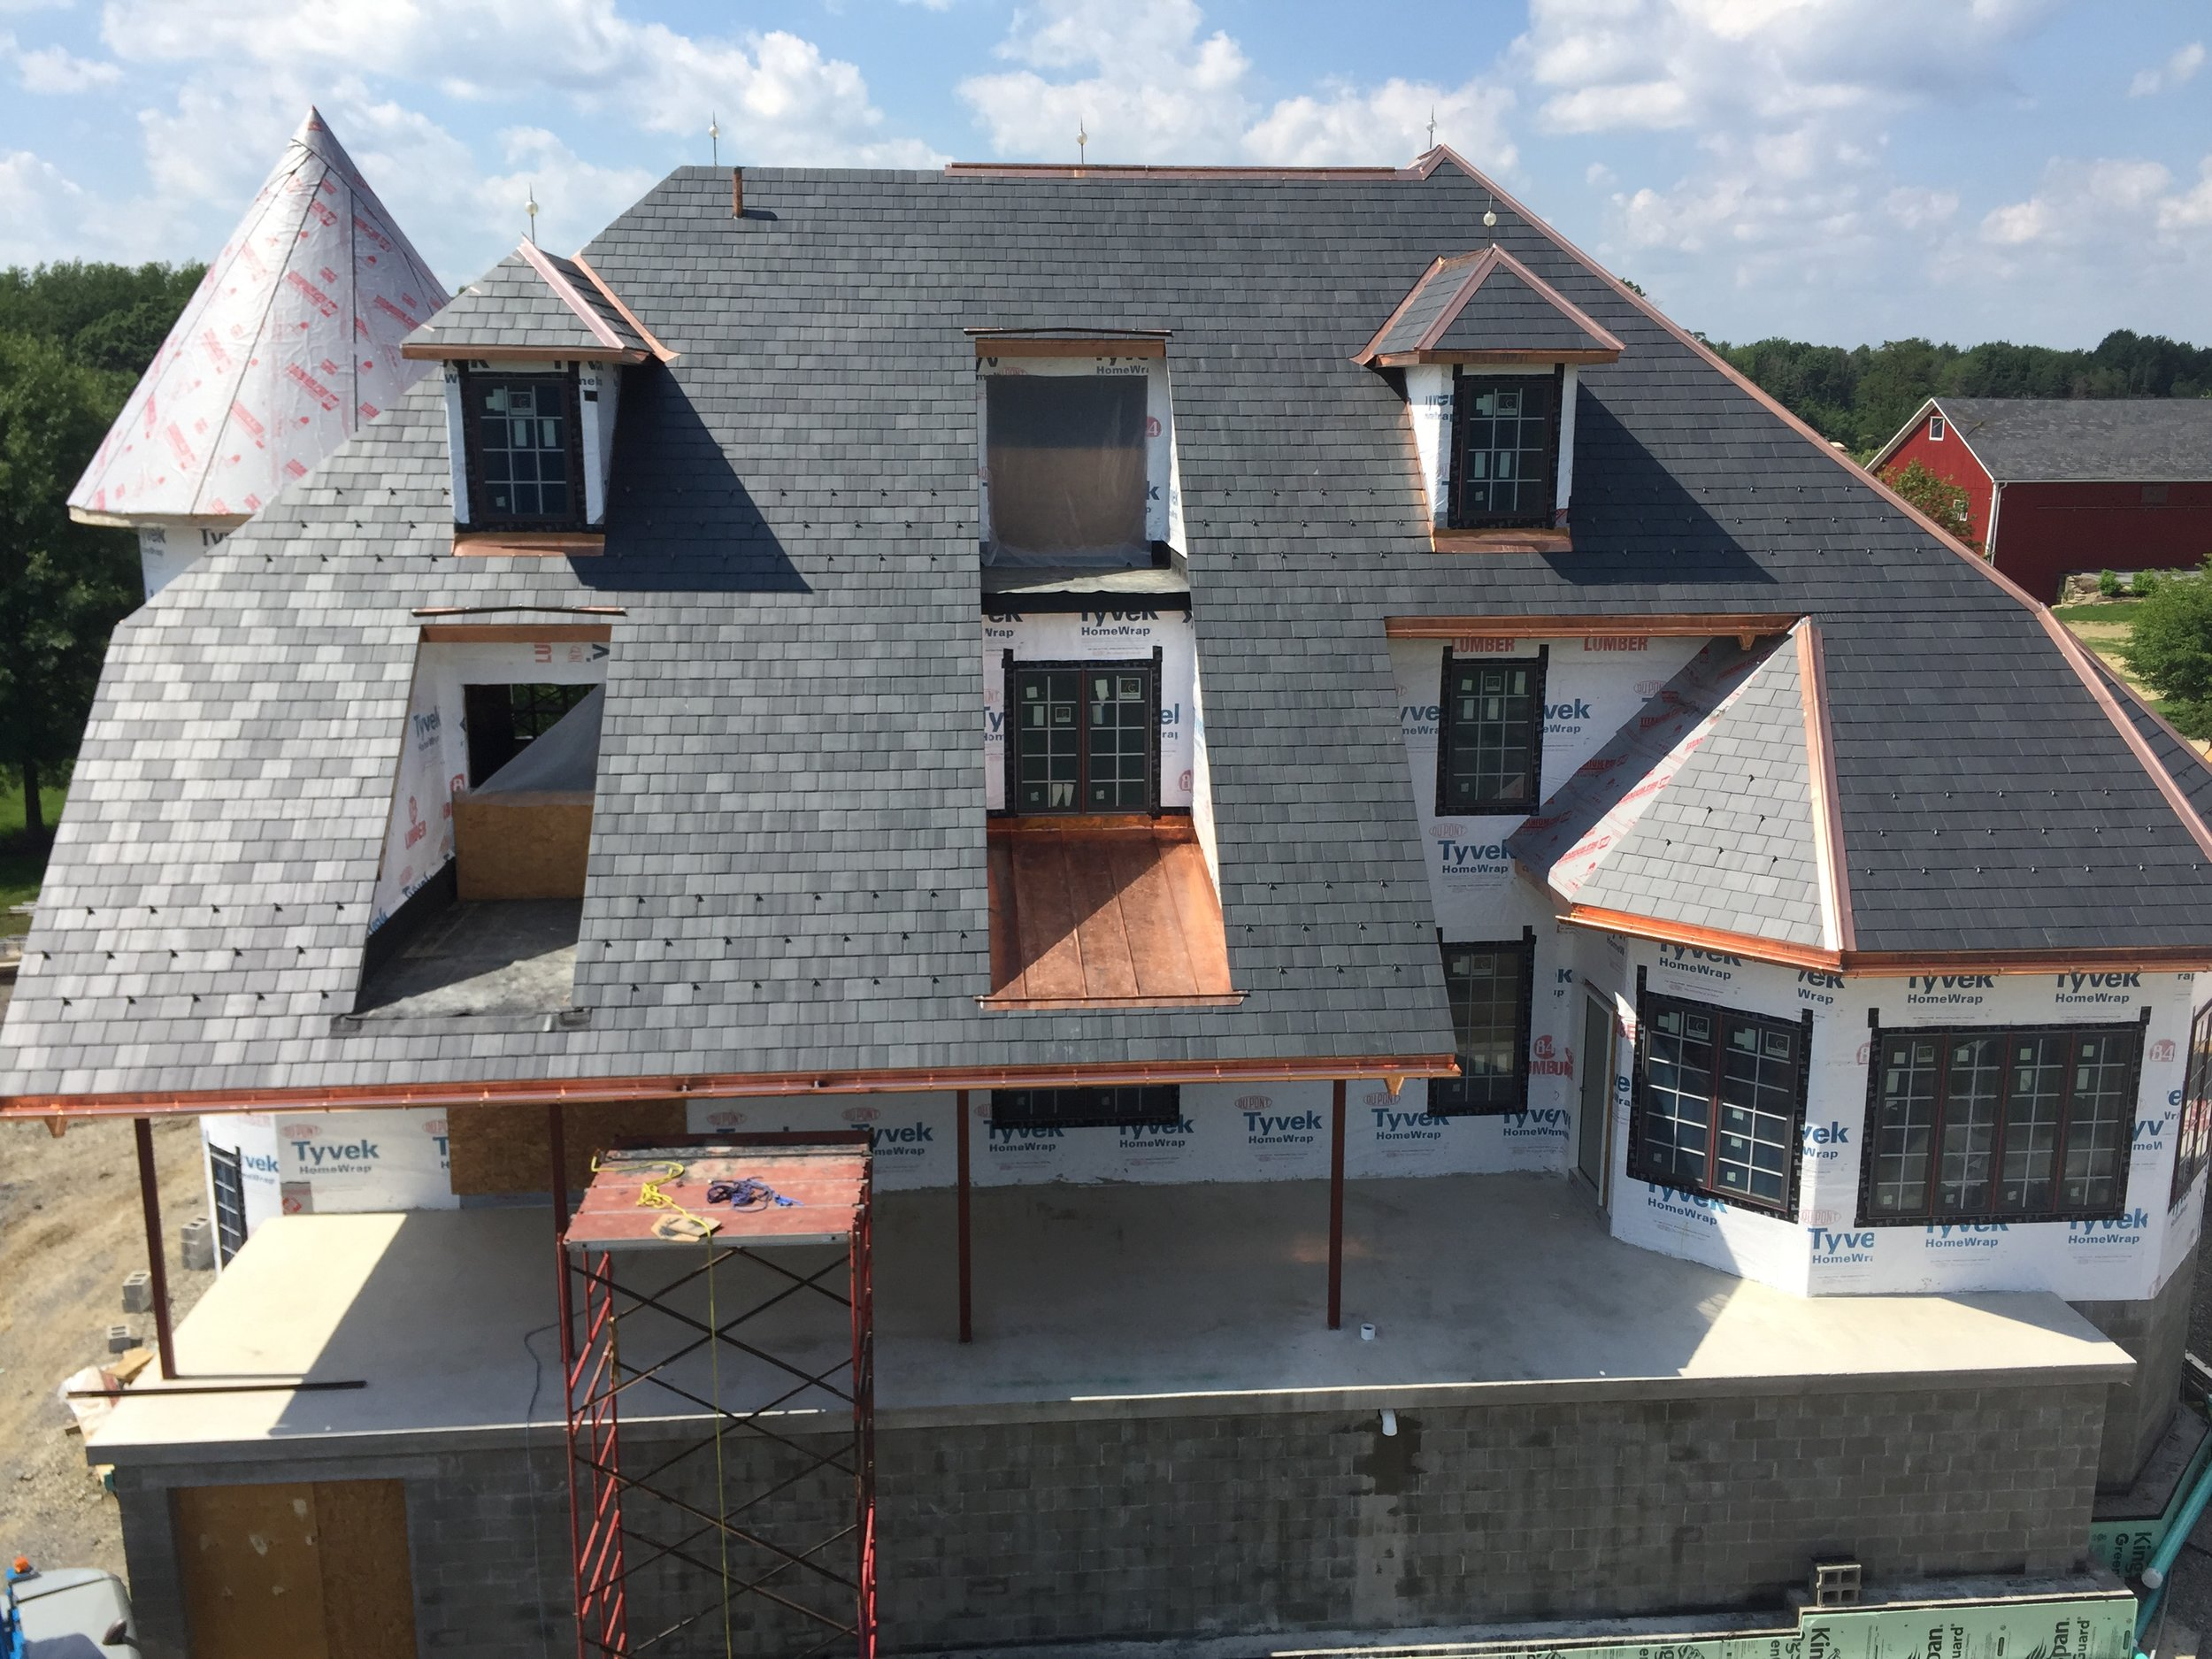 North Country Black Slate - Copper standing seam inset roof and copper ridge, hips, gutter.